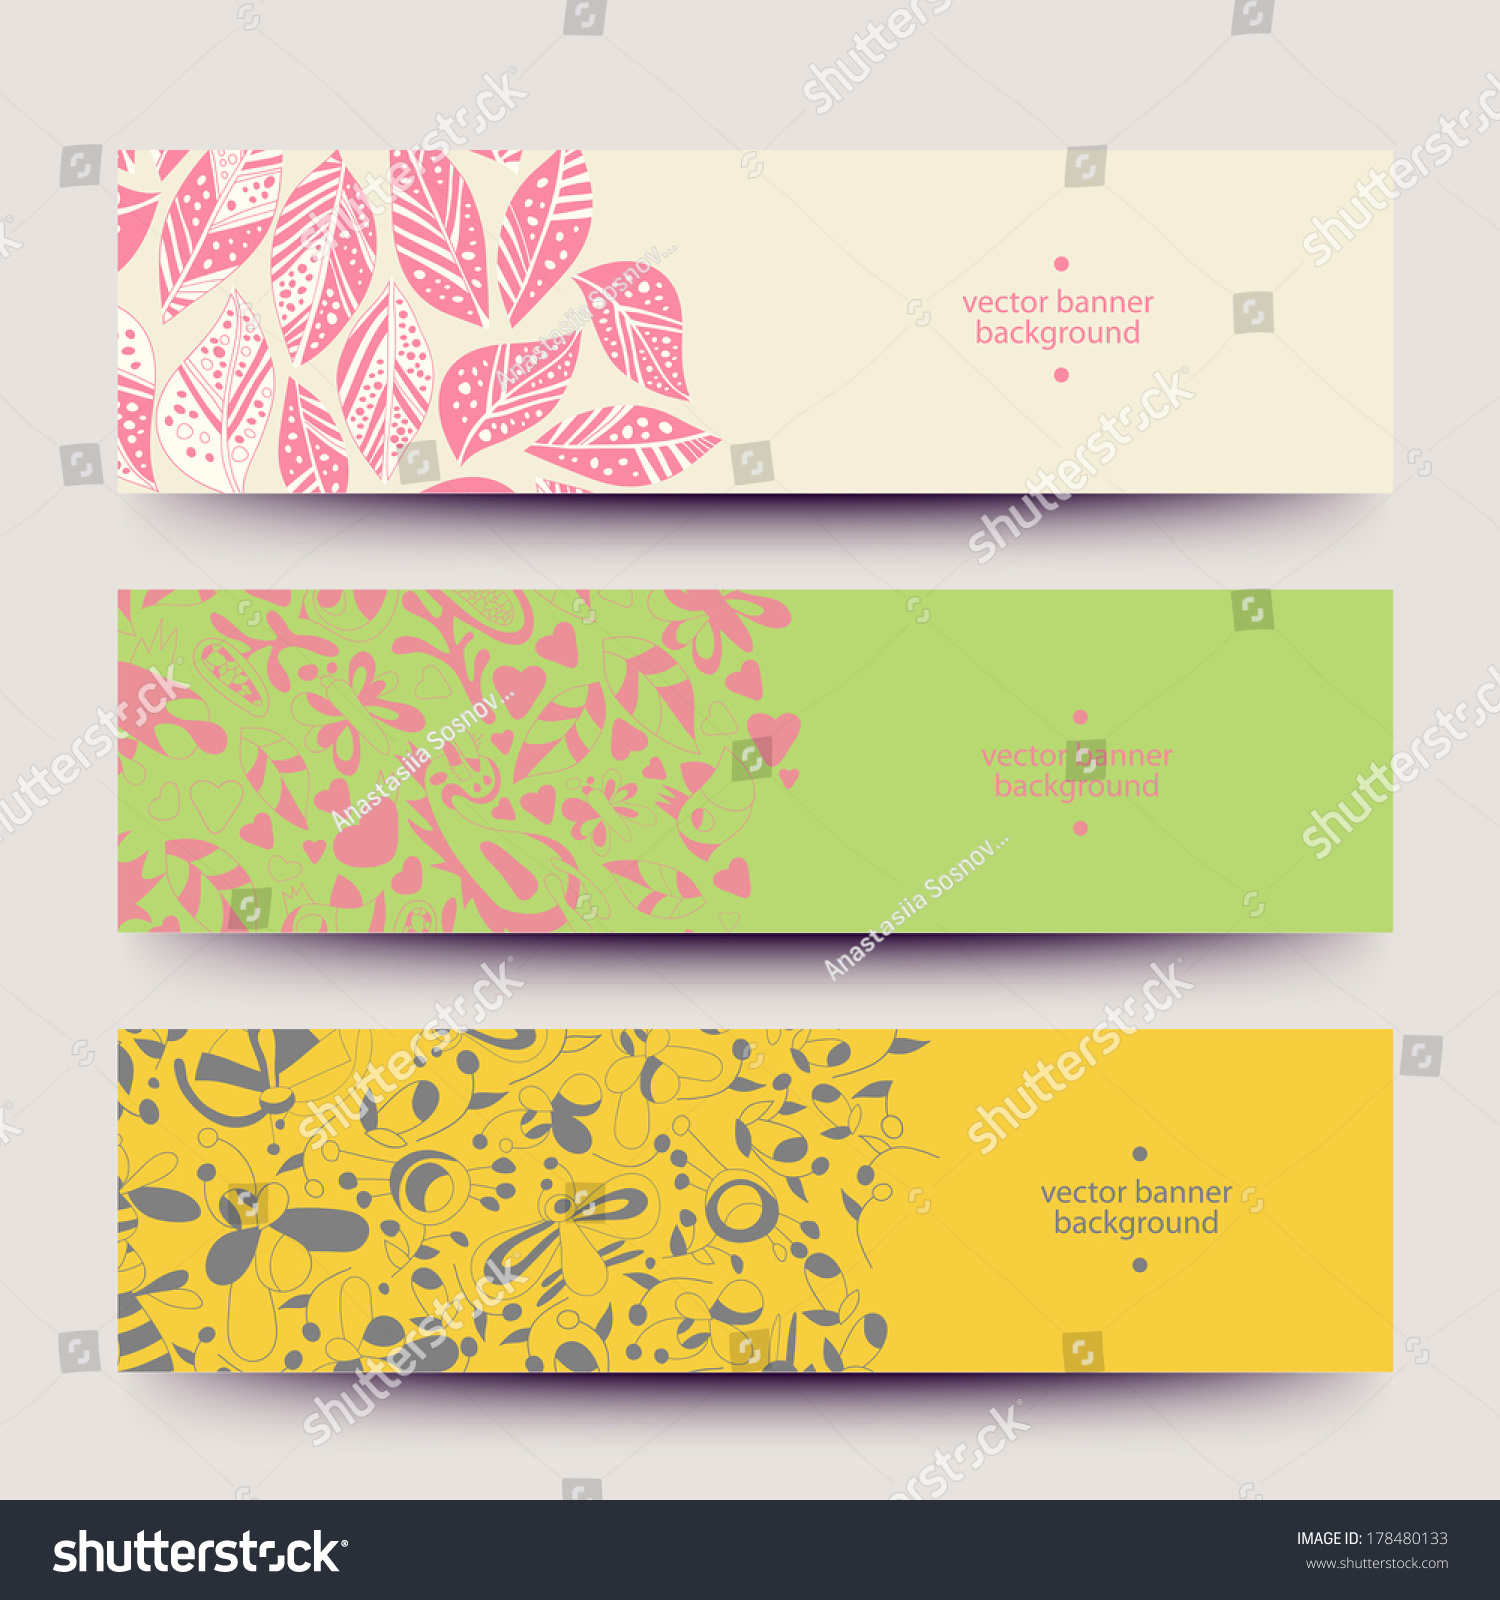 Banners business cards labels tags unique stock vector 178480133 banners for business cards labels tags unique design and interesting solutions hand magicingreecefo Gallery